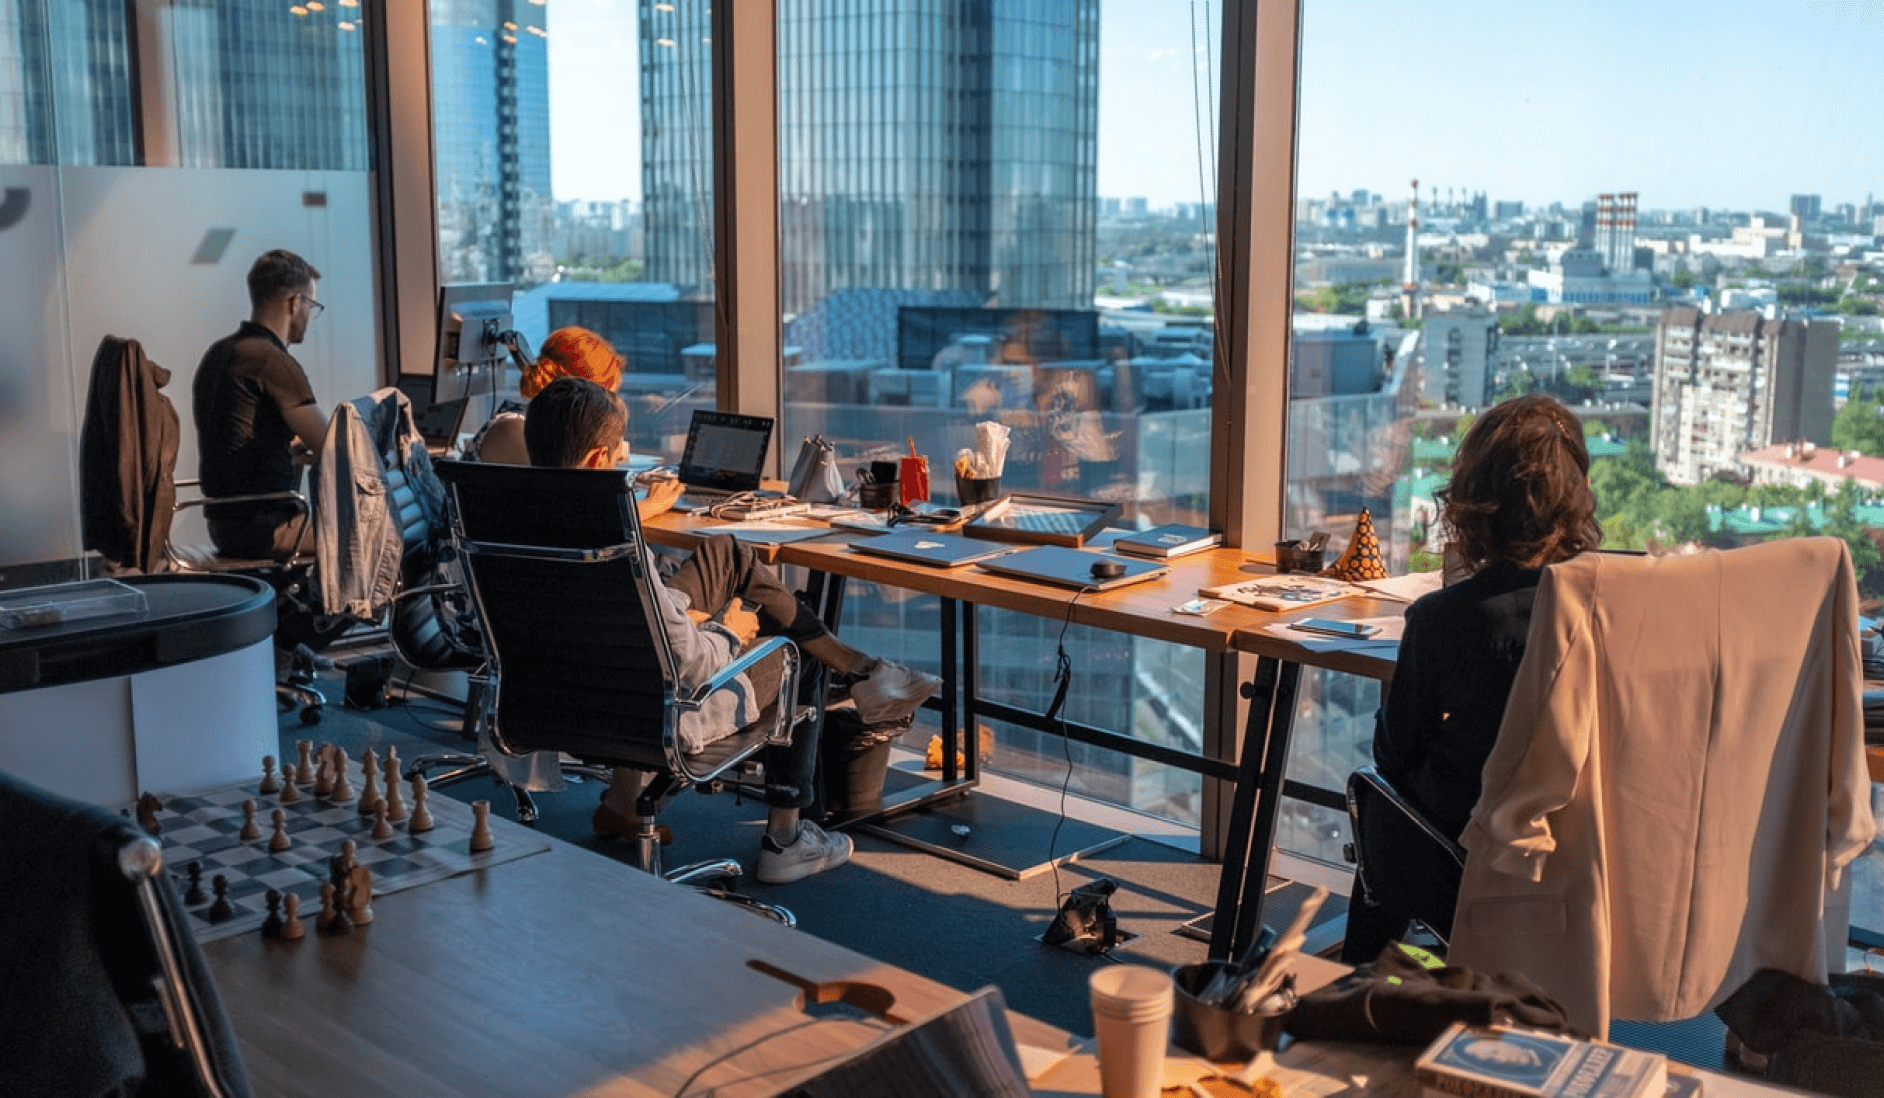 A day in the office of an IT company